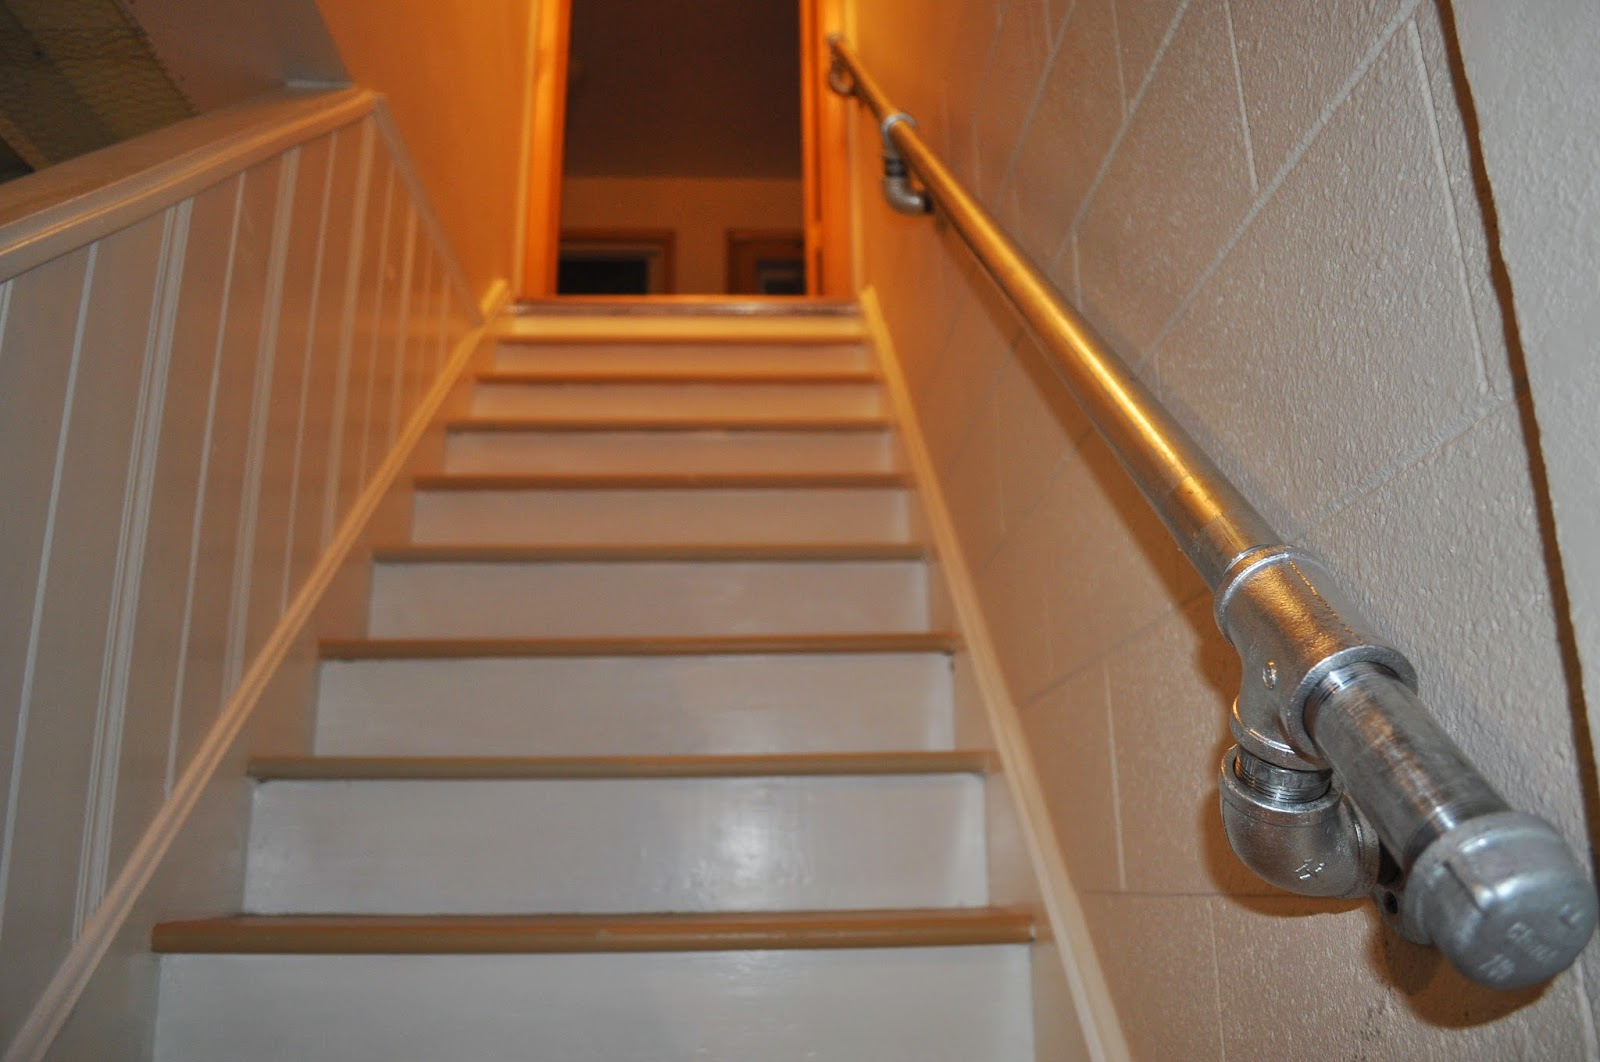 Brand new Carri Us Home: DIY Industrial Handrail GX68